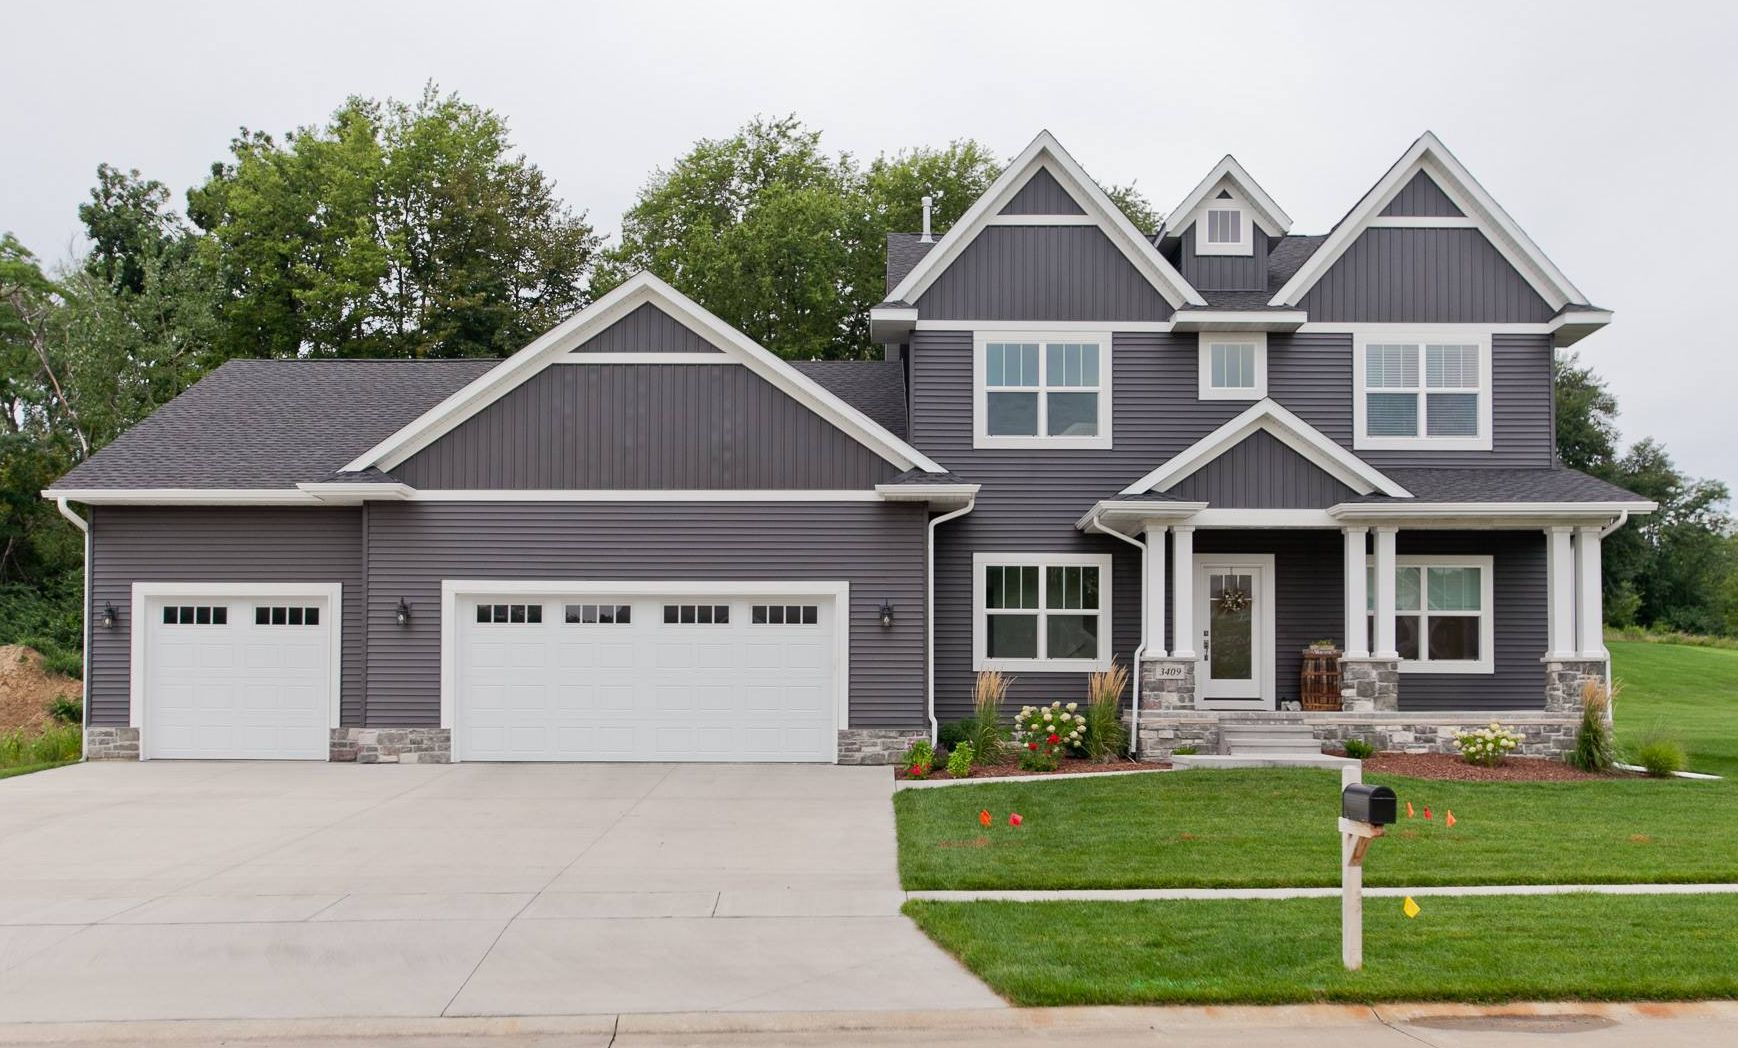 Custom Home Designs. Whether You Are Building A Single Family Home Or  Developing An Entire Community, At Prull Custom Home Designs I Am Here To  Make It A ...